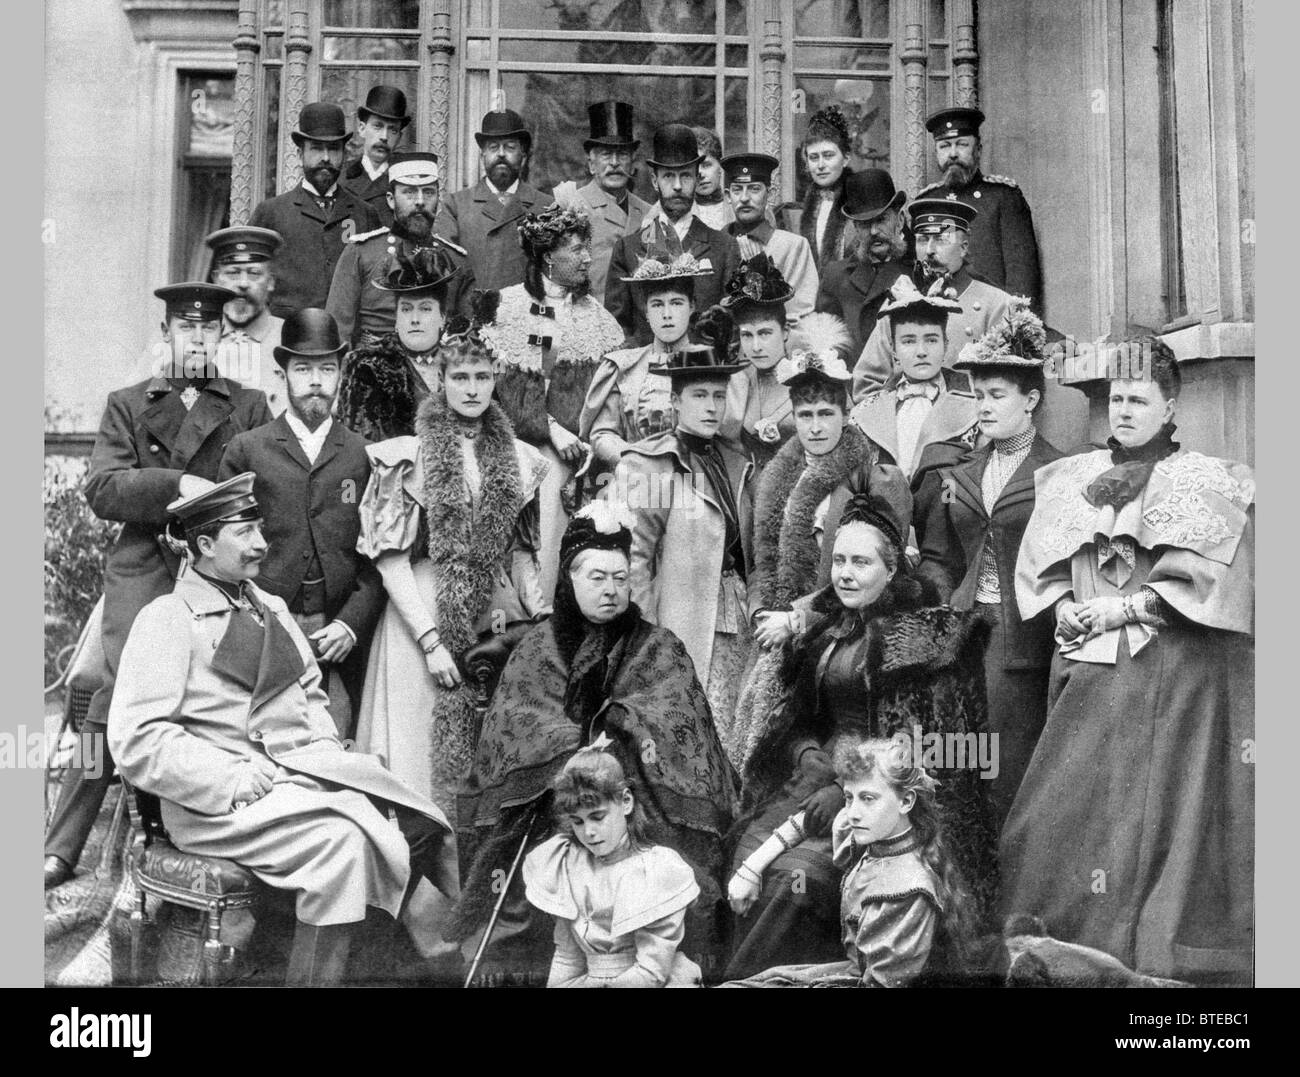 75-year-old Queen Victoria of Great Britain - Stock Image